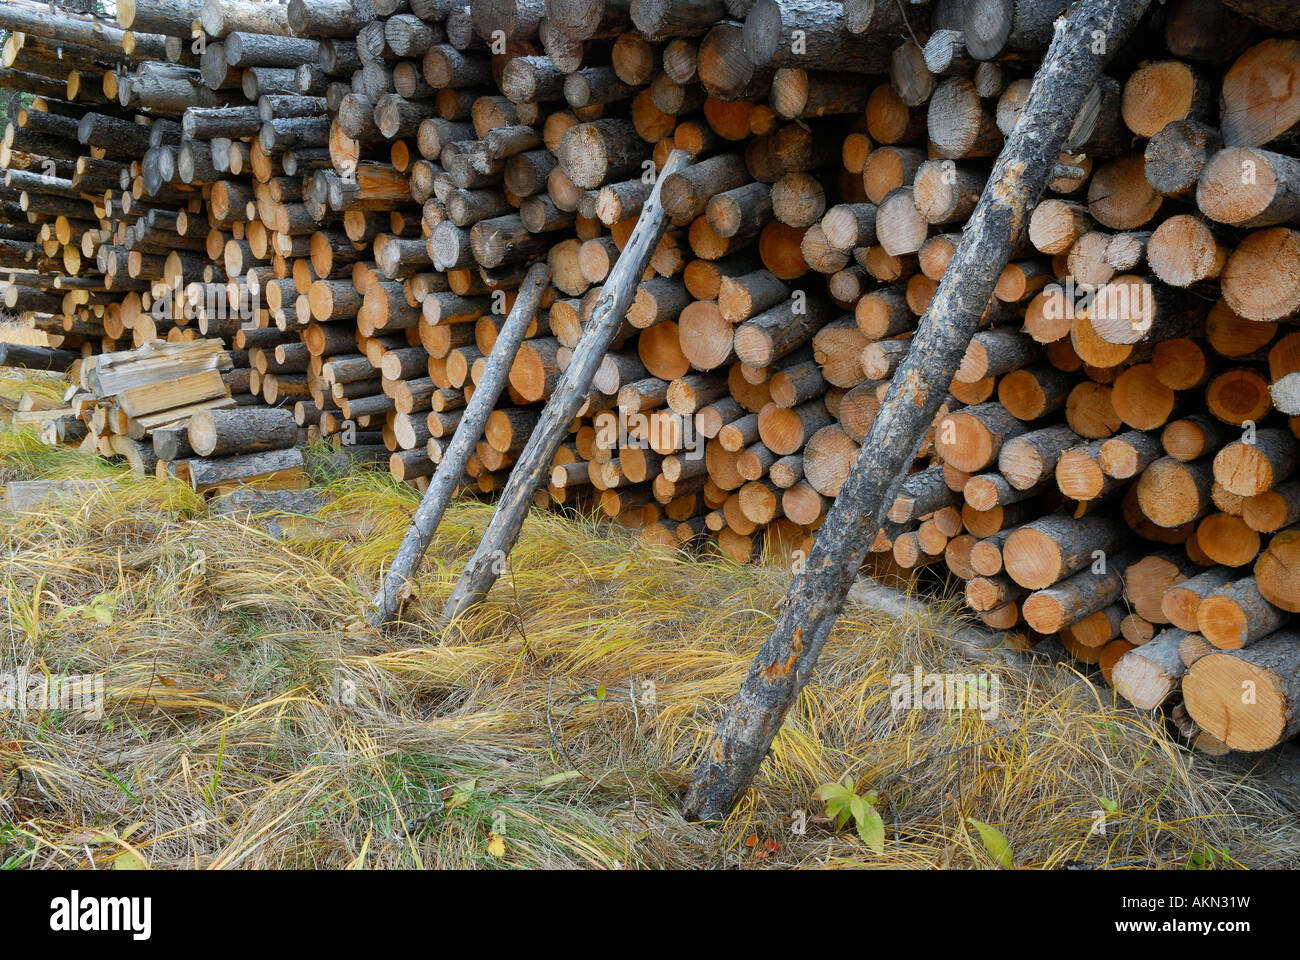 Stack of cut softwood poles ready to be split for firewood - Stock Image